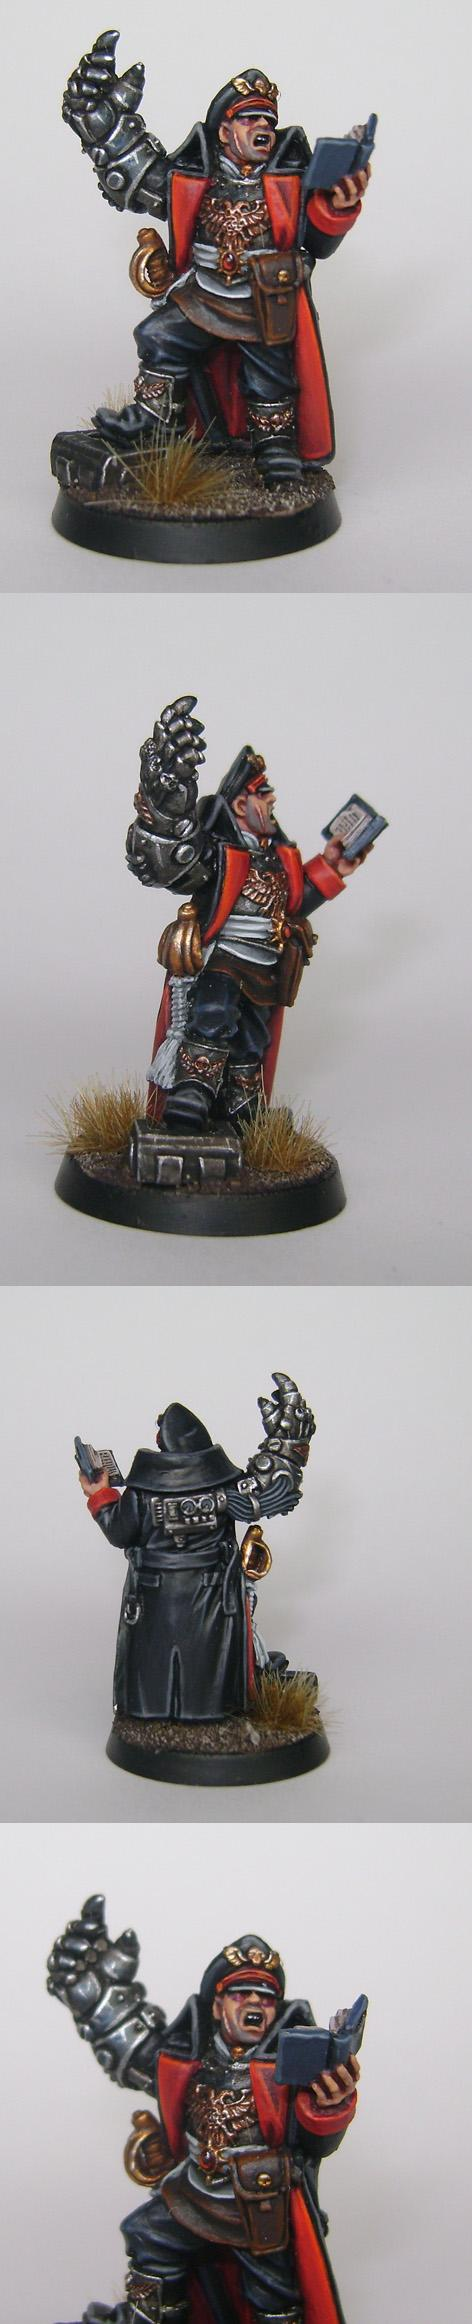 Commissar, Games Workshop, Imperial Guard, Painted, Power Fist, Warhammer 40,000